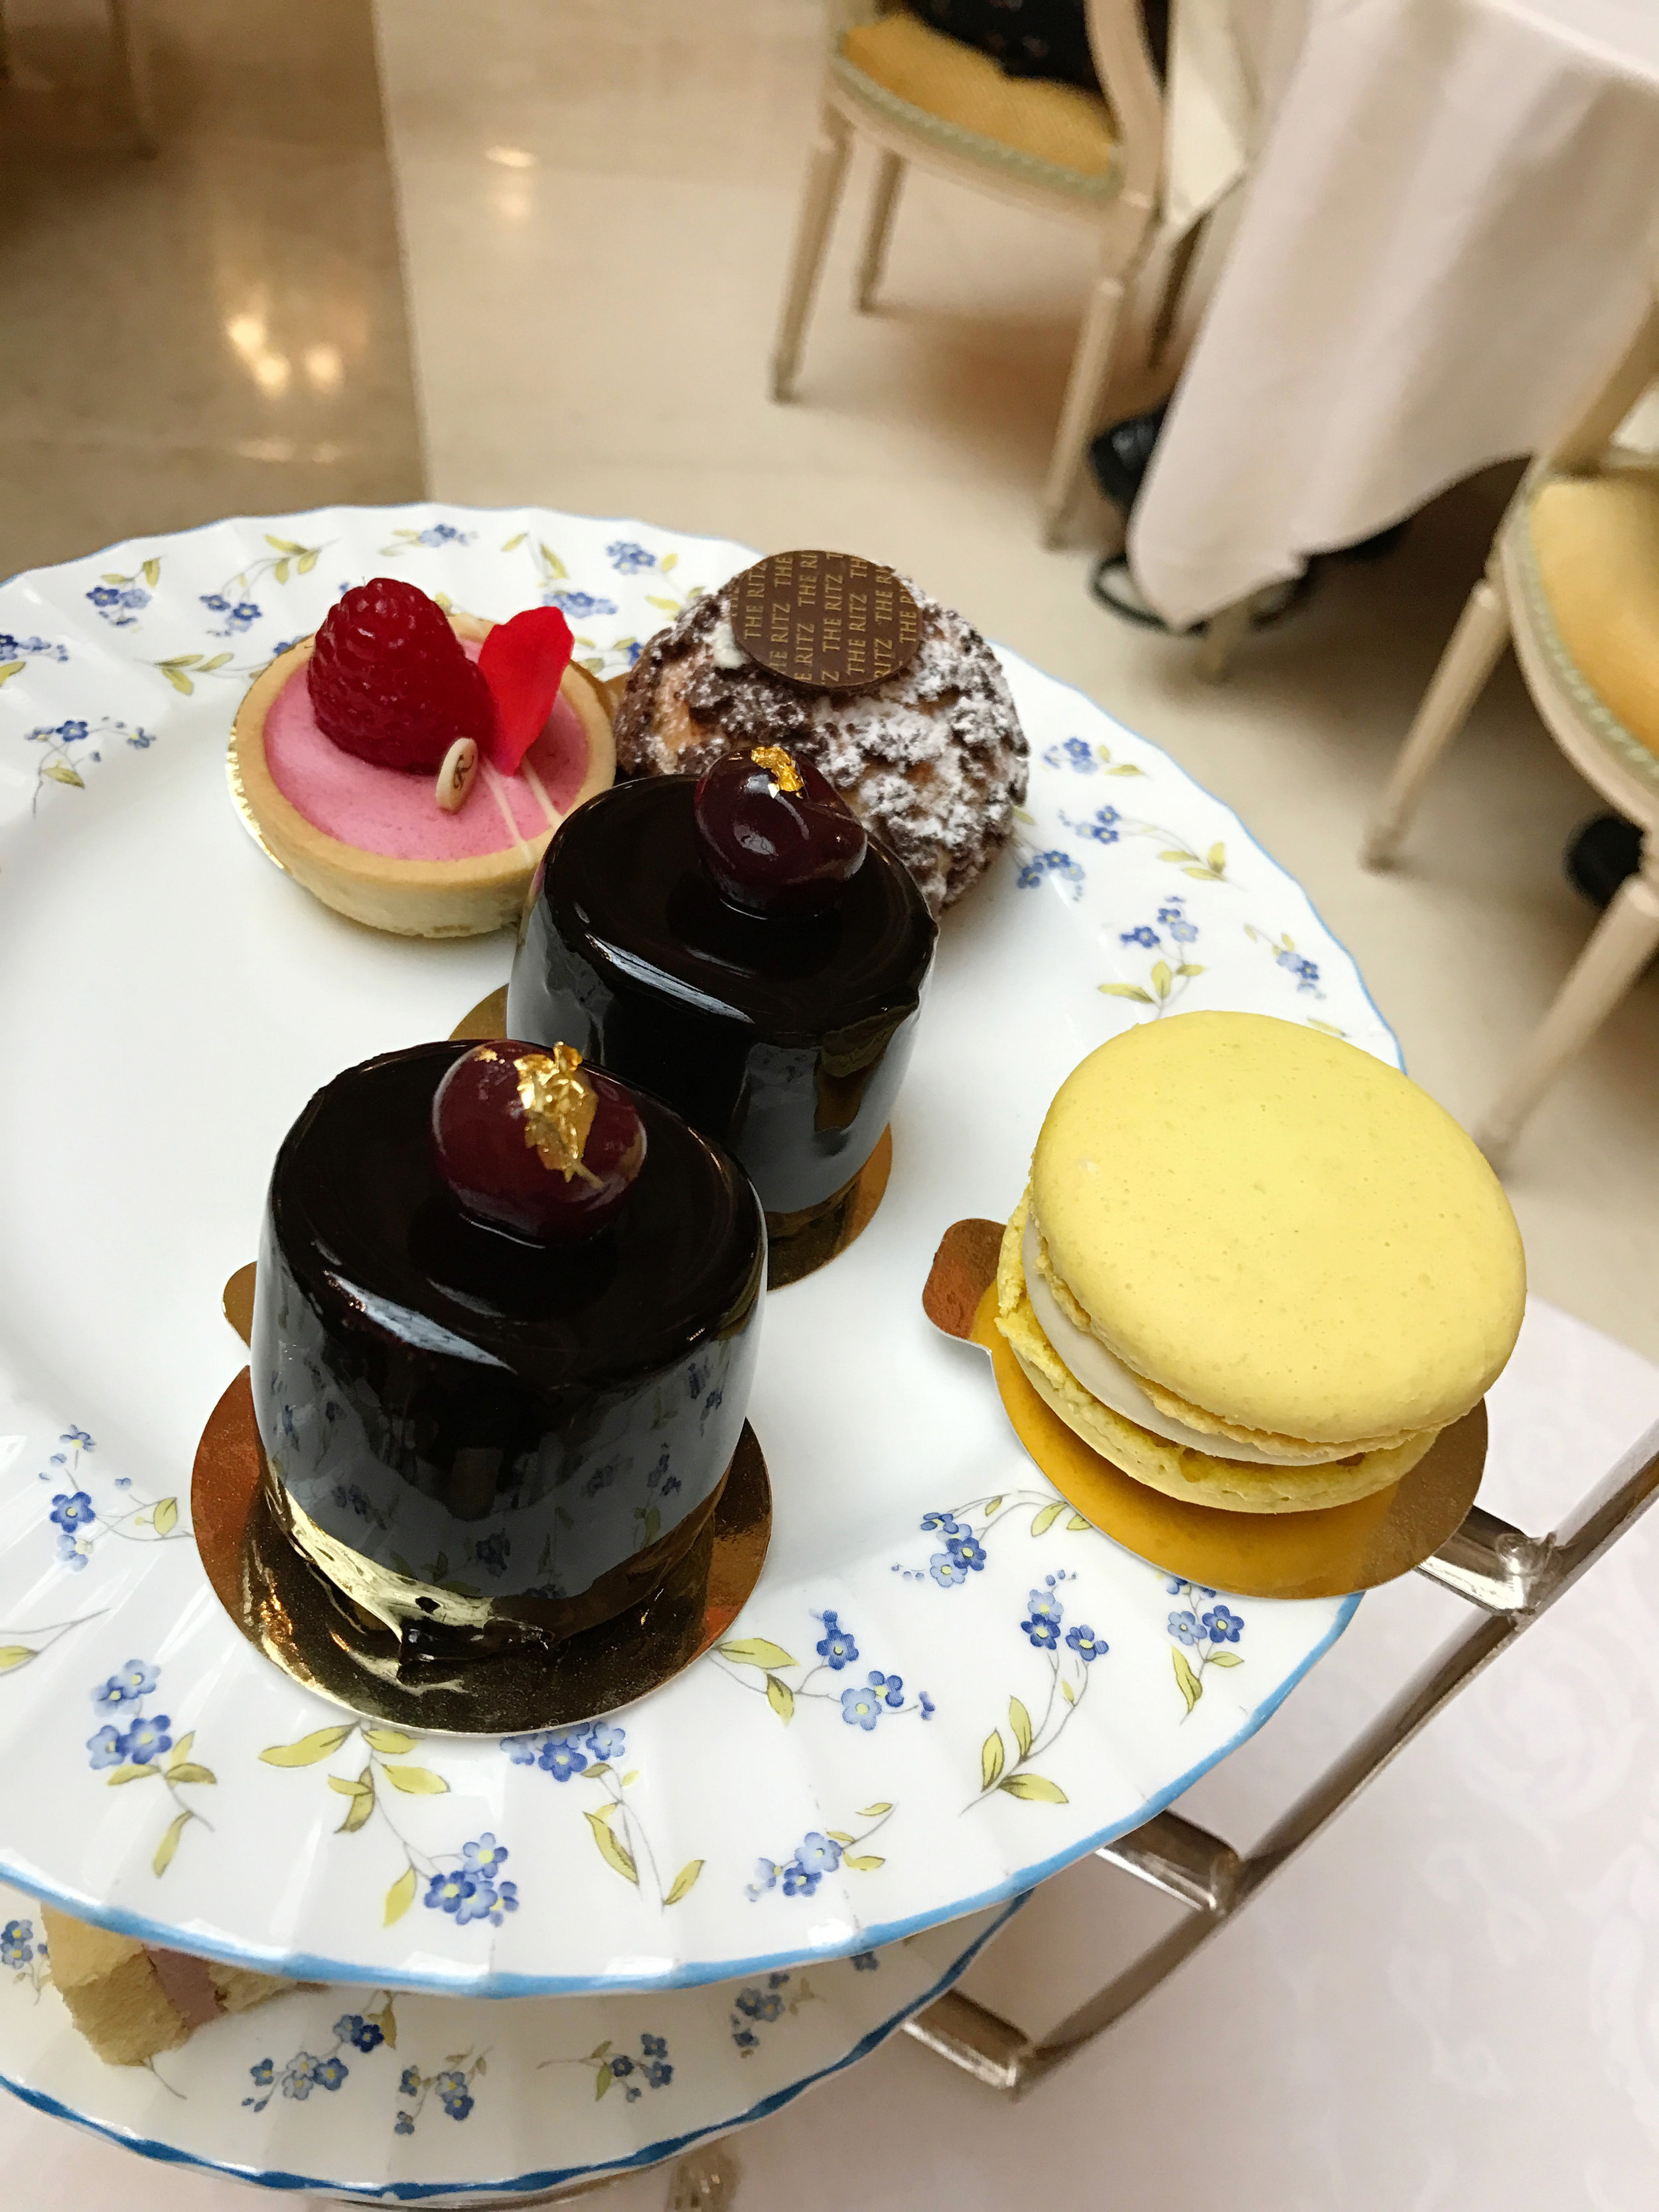 Adorable Dessert Tray during high tea at The Ritz London - #Kurtantravels London Travel Guide Part 2 - BySarahRae.com